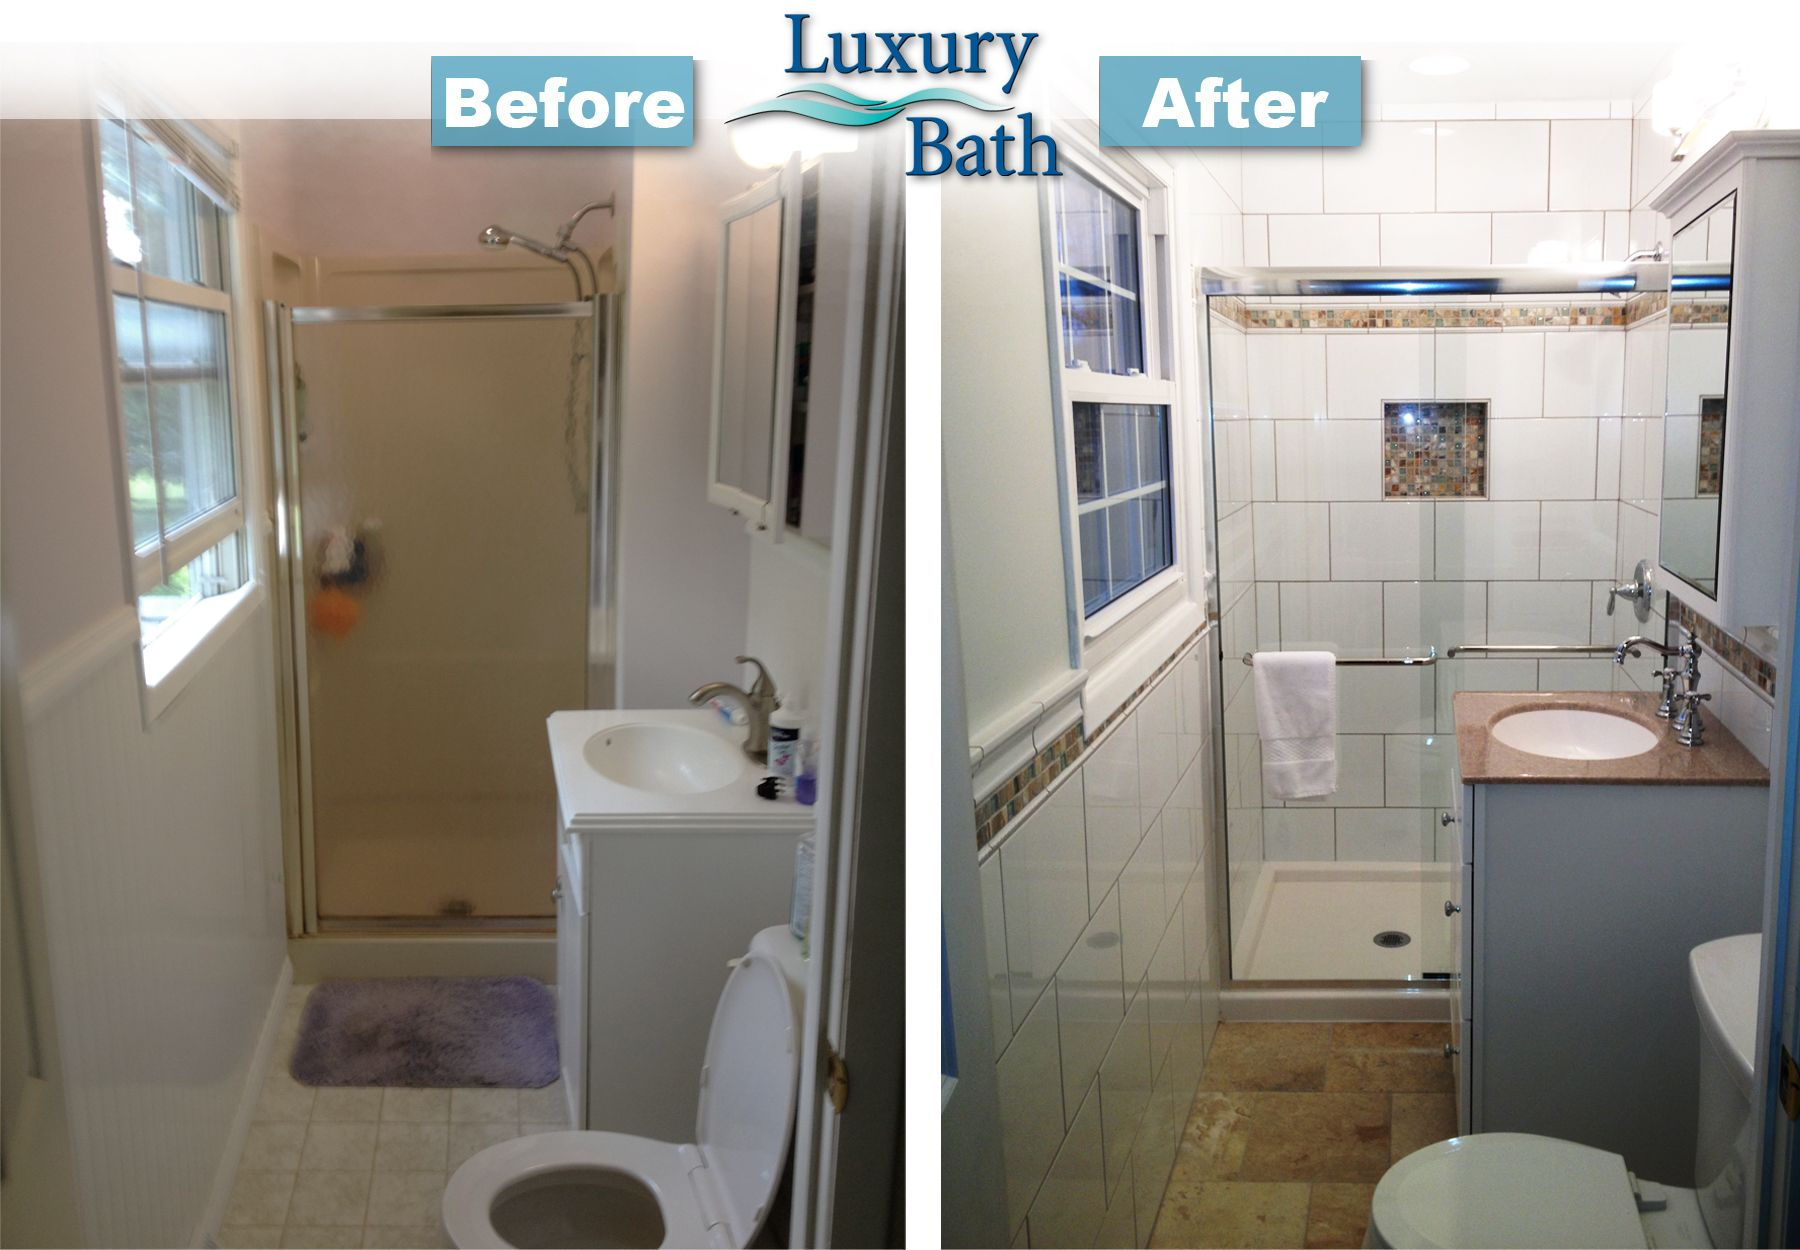 Looking For Small Bathroom Remodeling Ideas? Here Is A